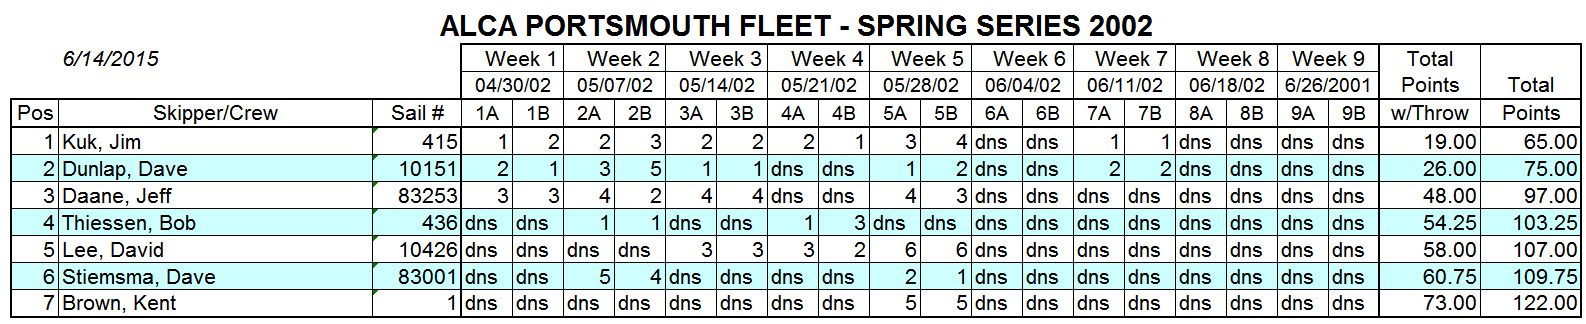 2002 Spring Portsmouth Fleet Results